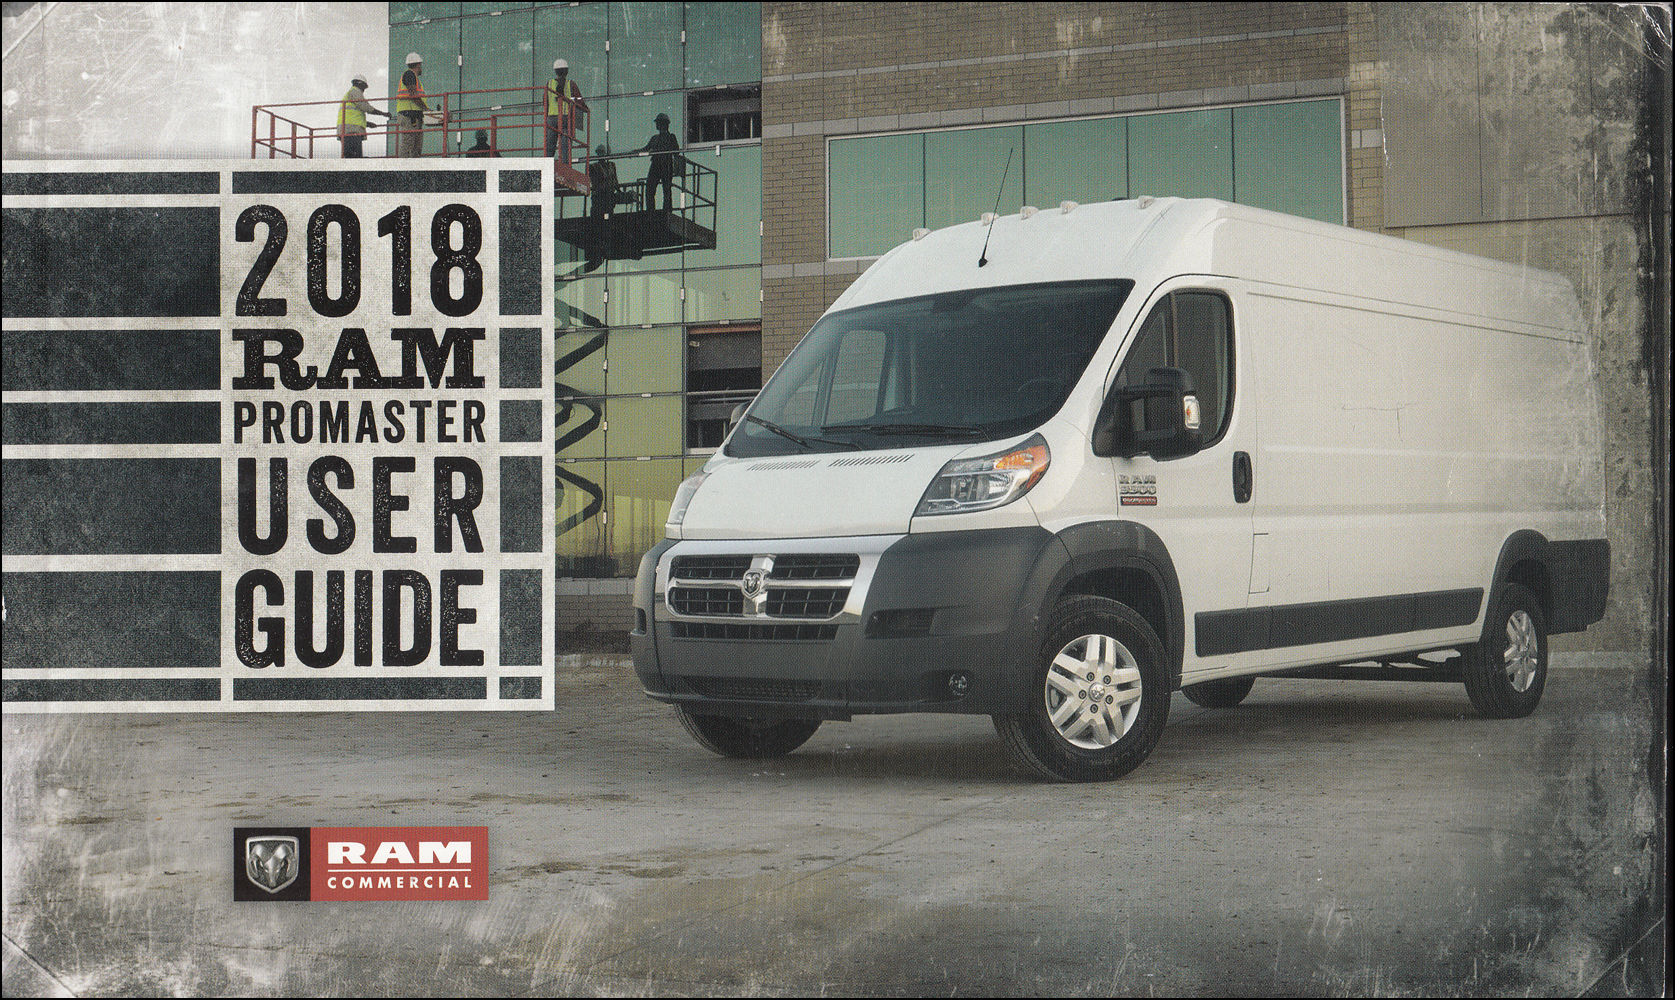 2018 Ram Promaster User Guide Owner's Manual Original